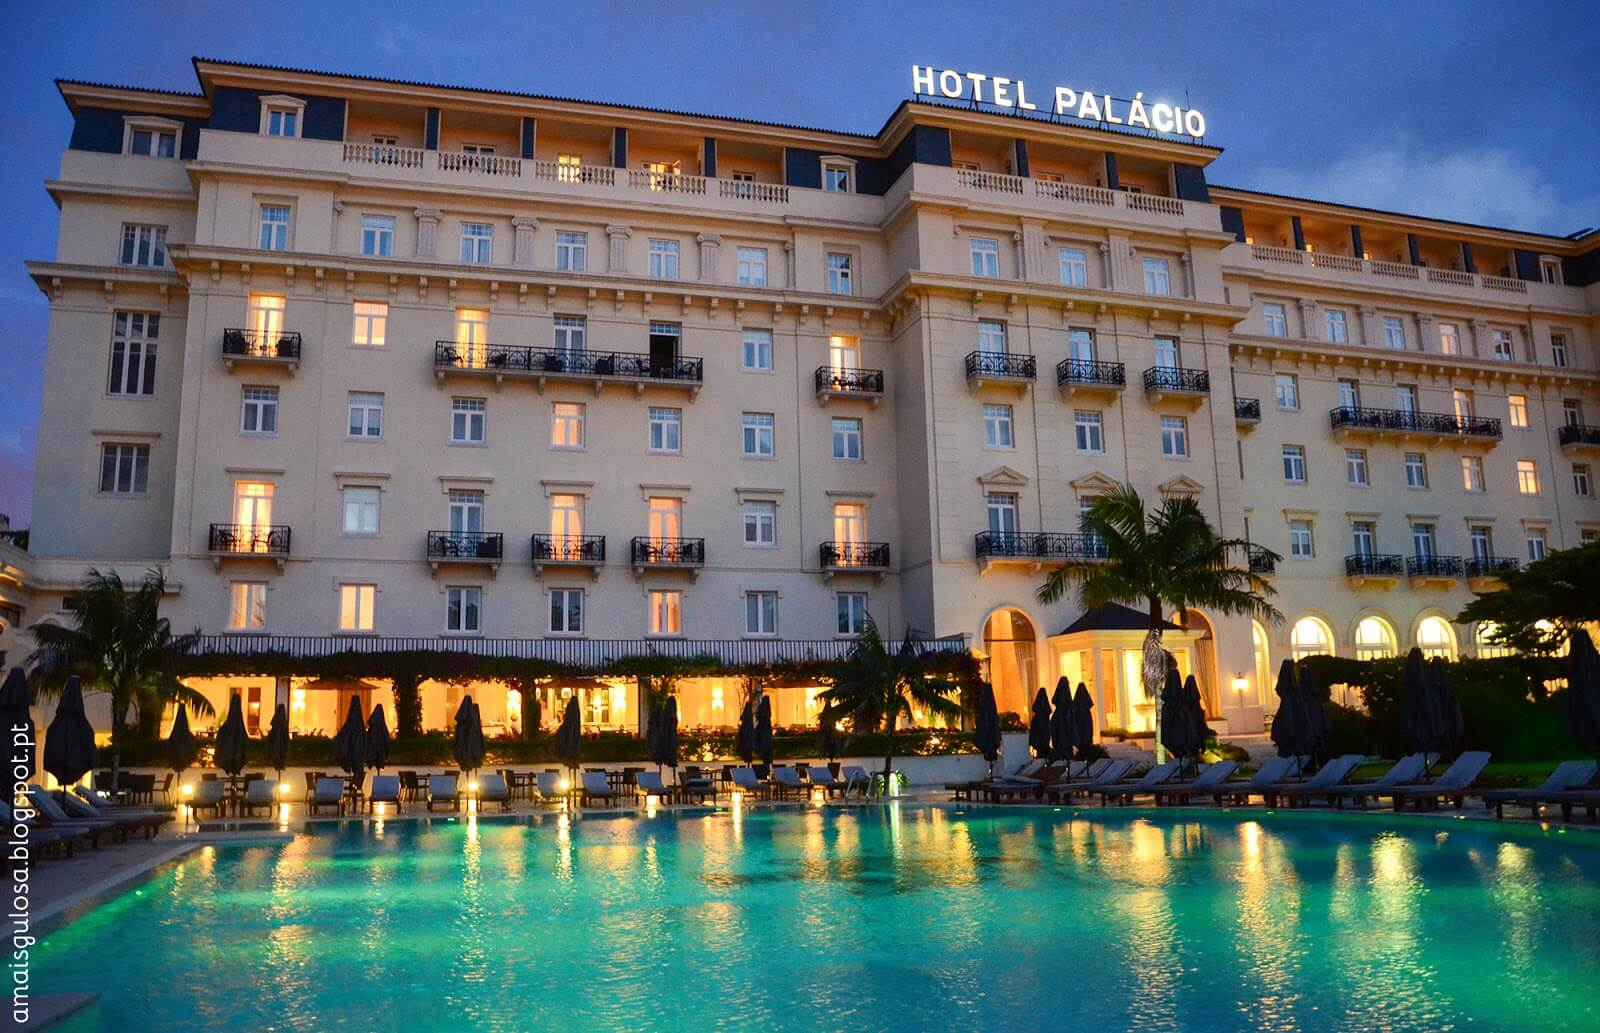 Hotel Palacio Estoril, Central Estoril